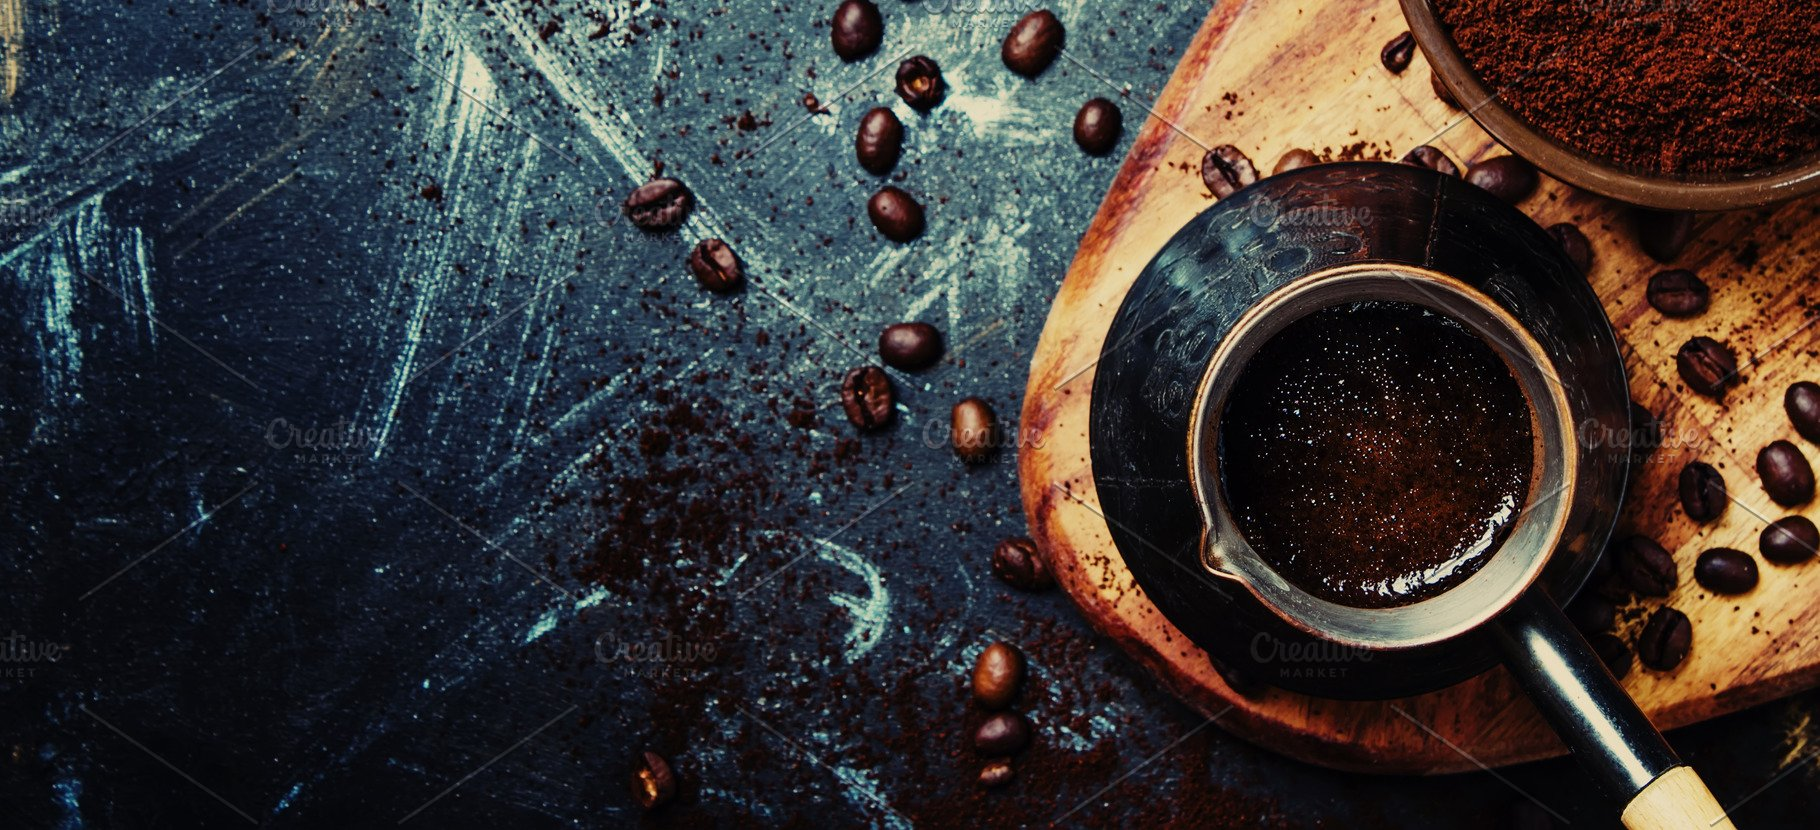 Food coffee background banner top High Quality Food Images 1820x830